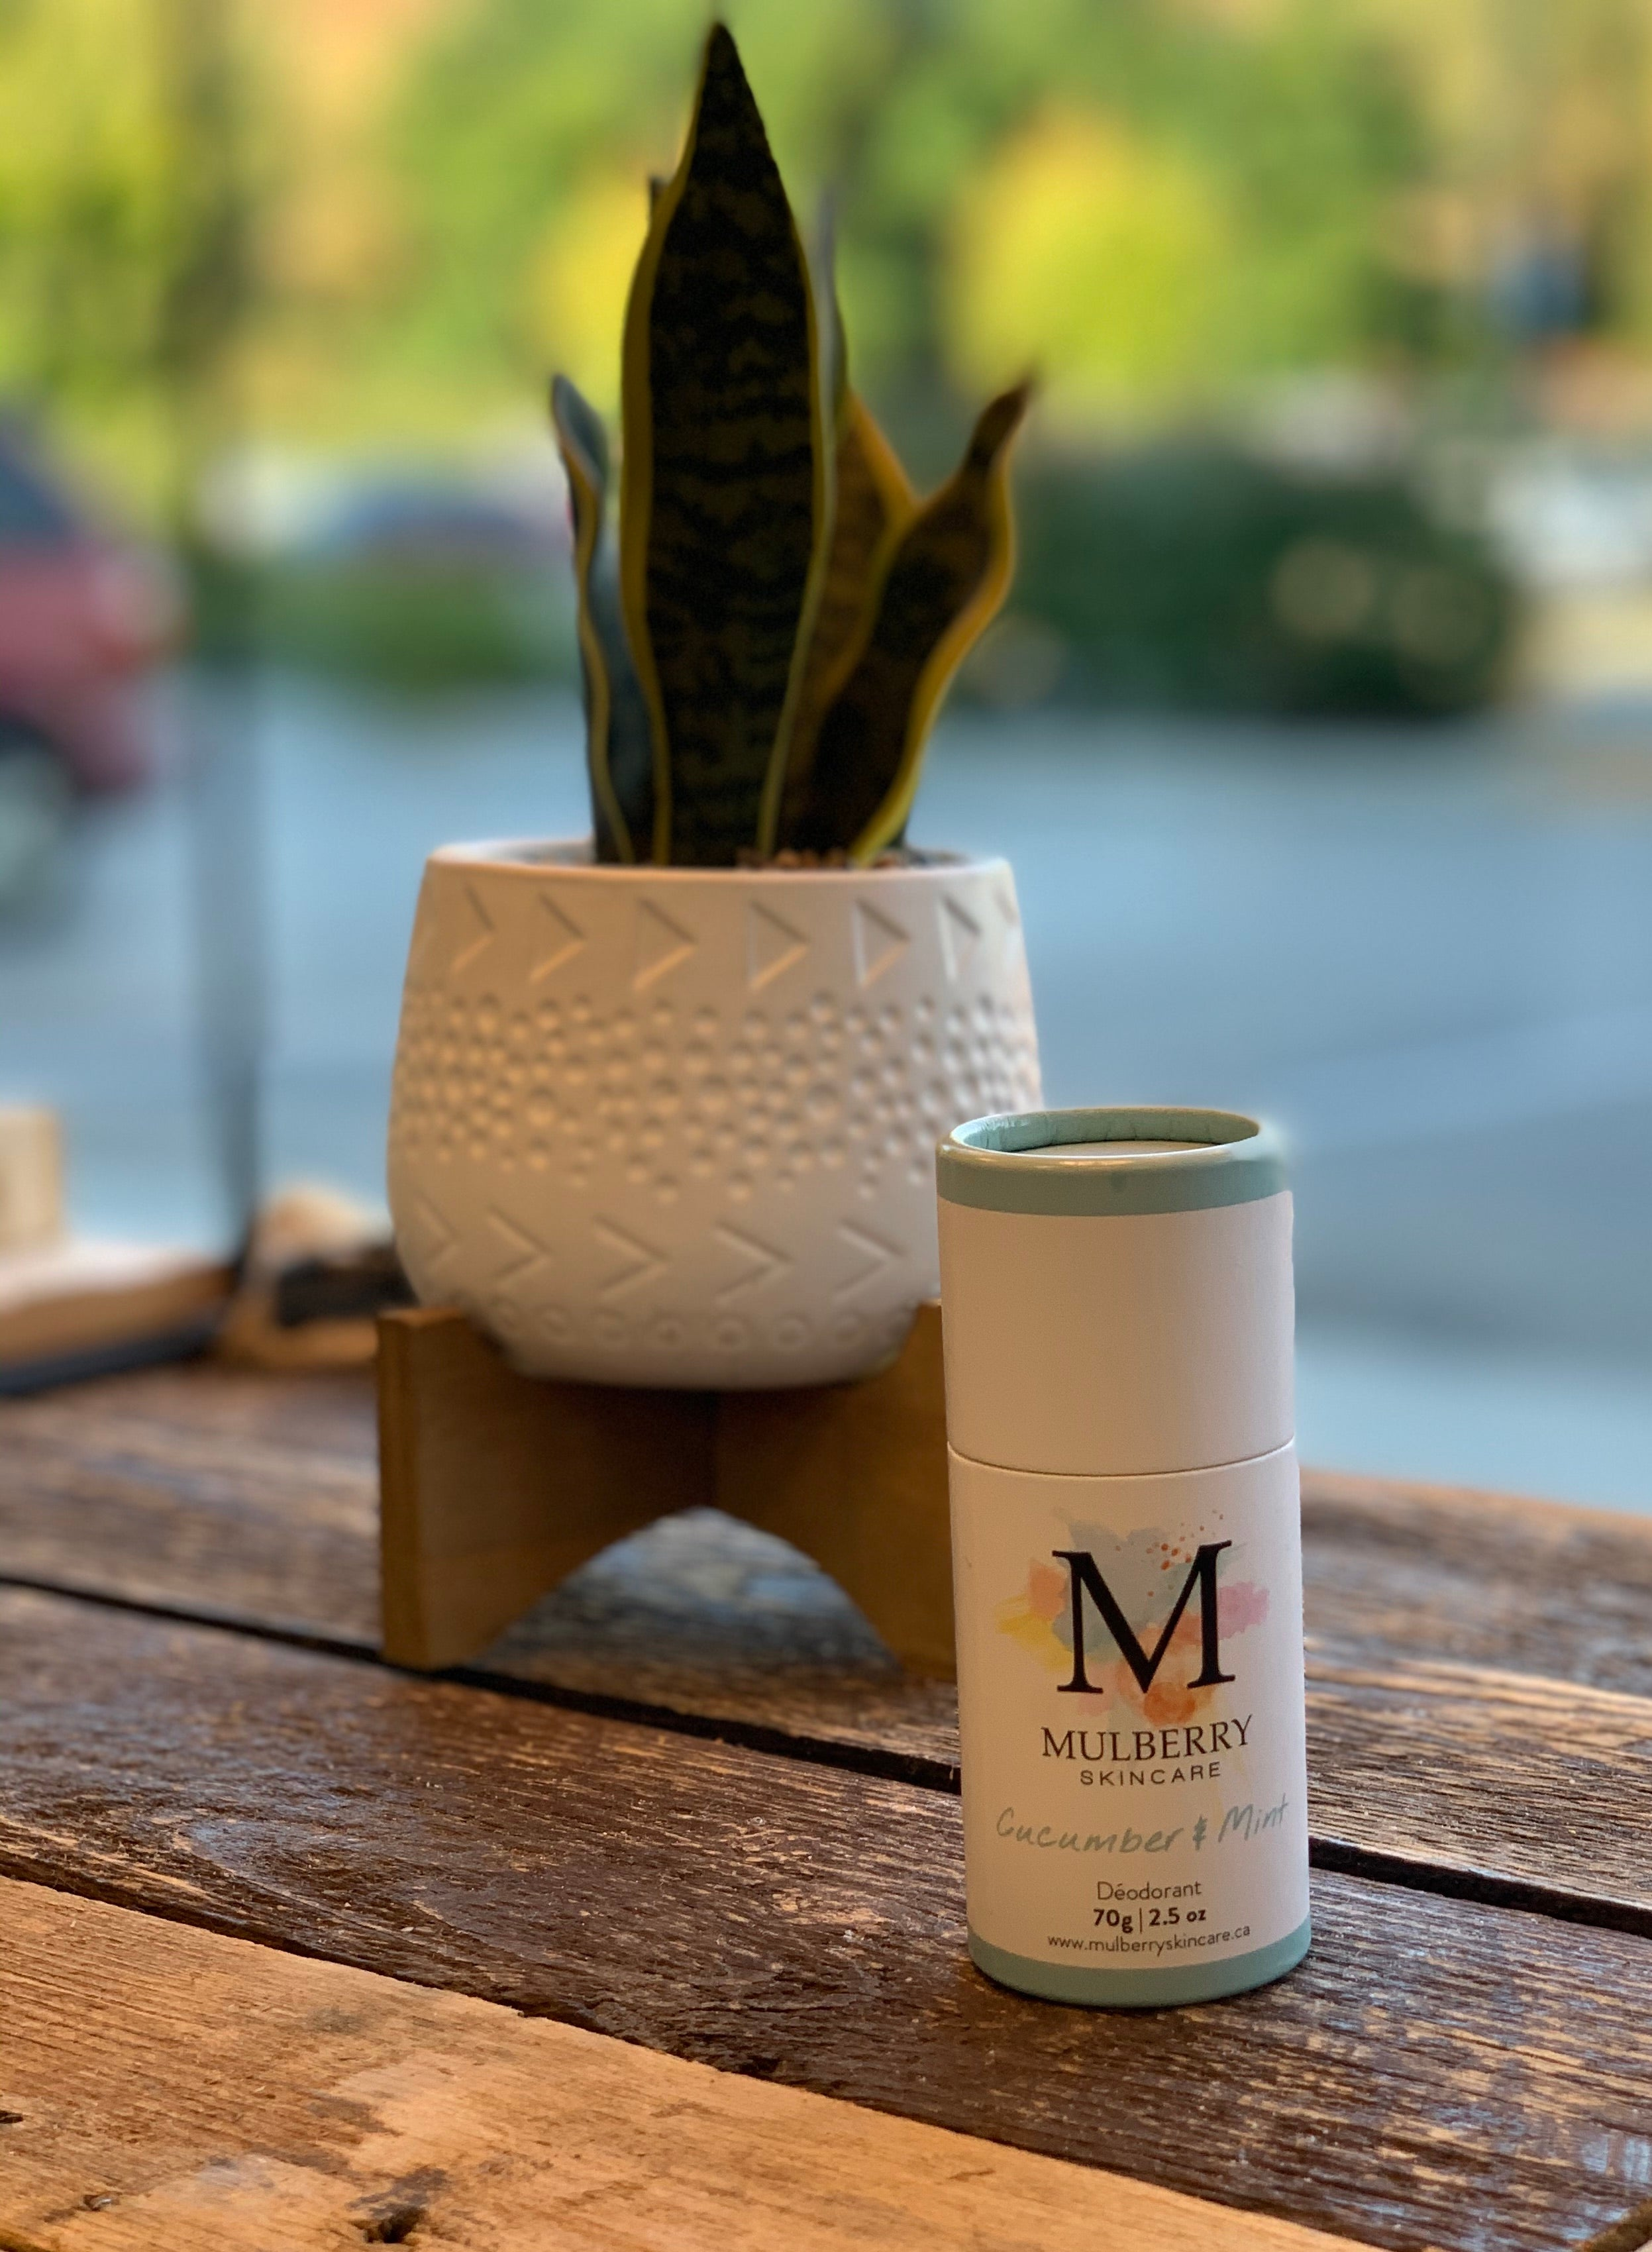 Mulberry Skin Care Deodorant- Cucumber Mint